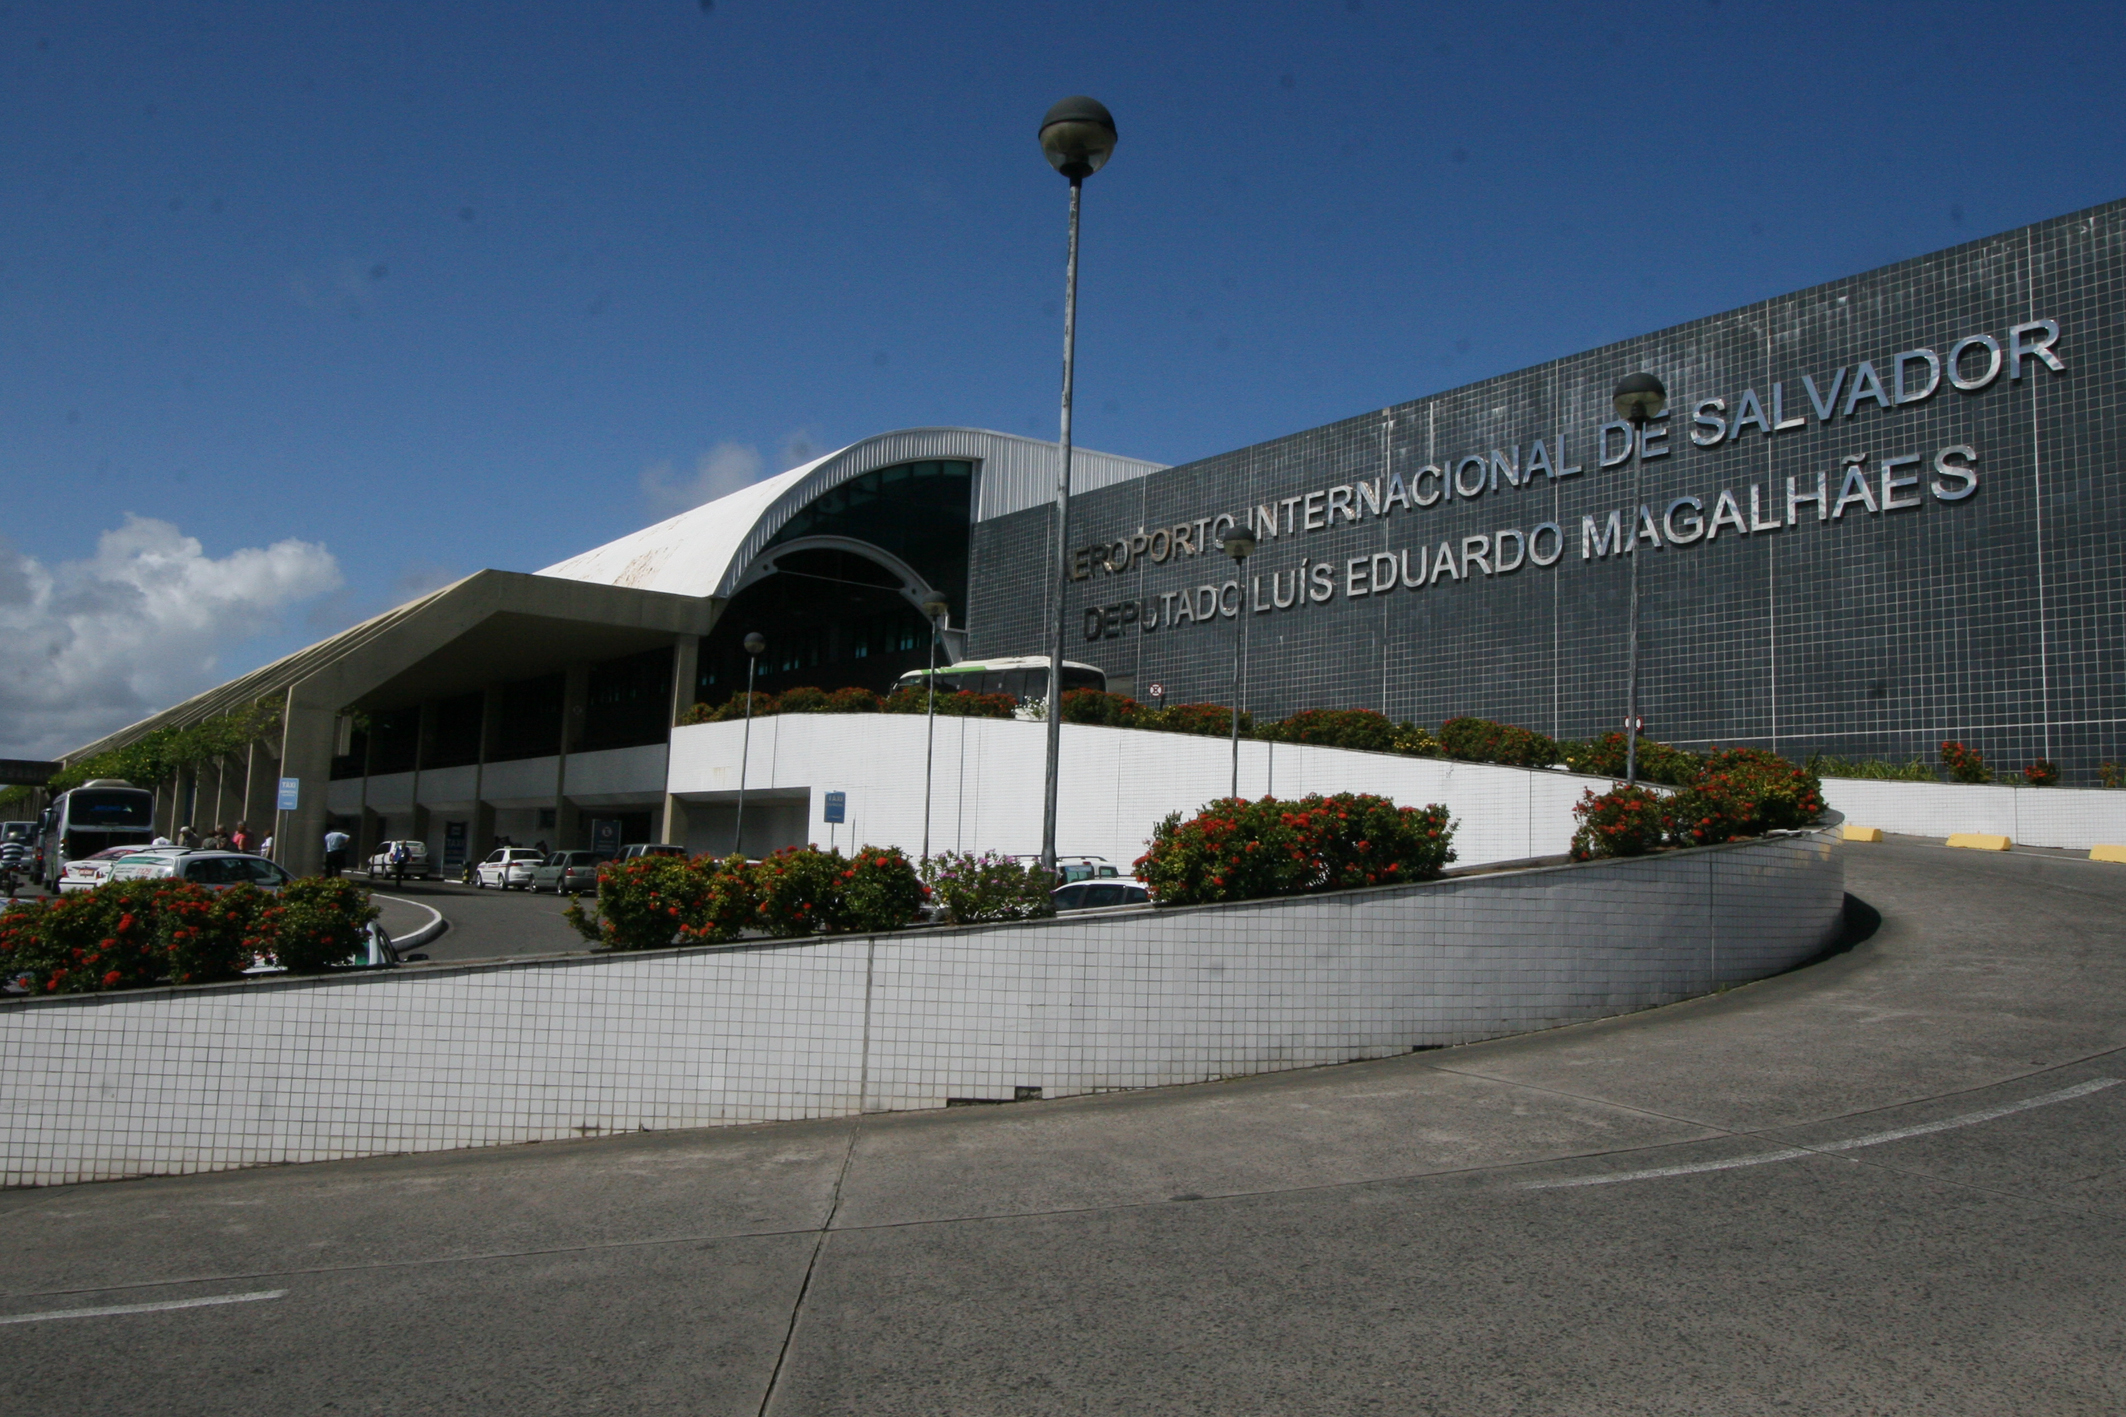 https://upload.wikimedia.org/wikipedia/commons/e/ea/Fachada_Aeroporto_de_Salvador2.jpg